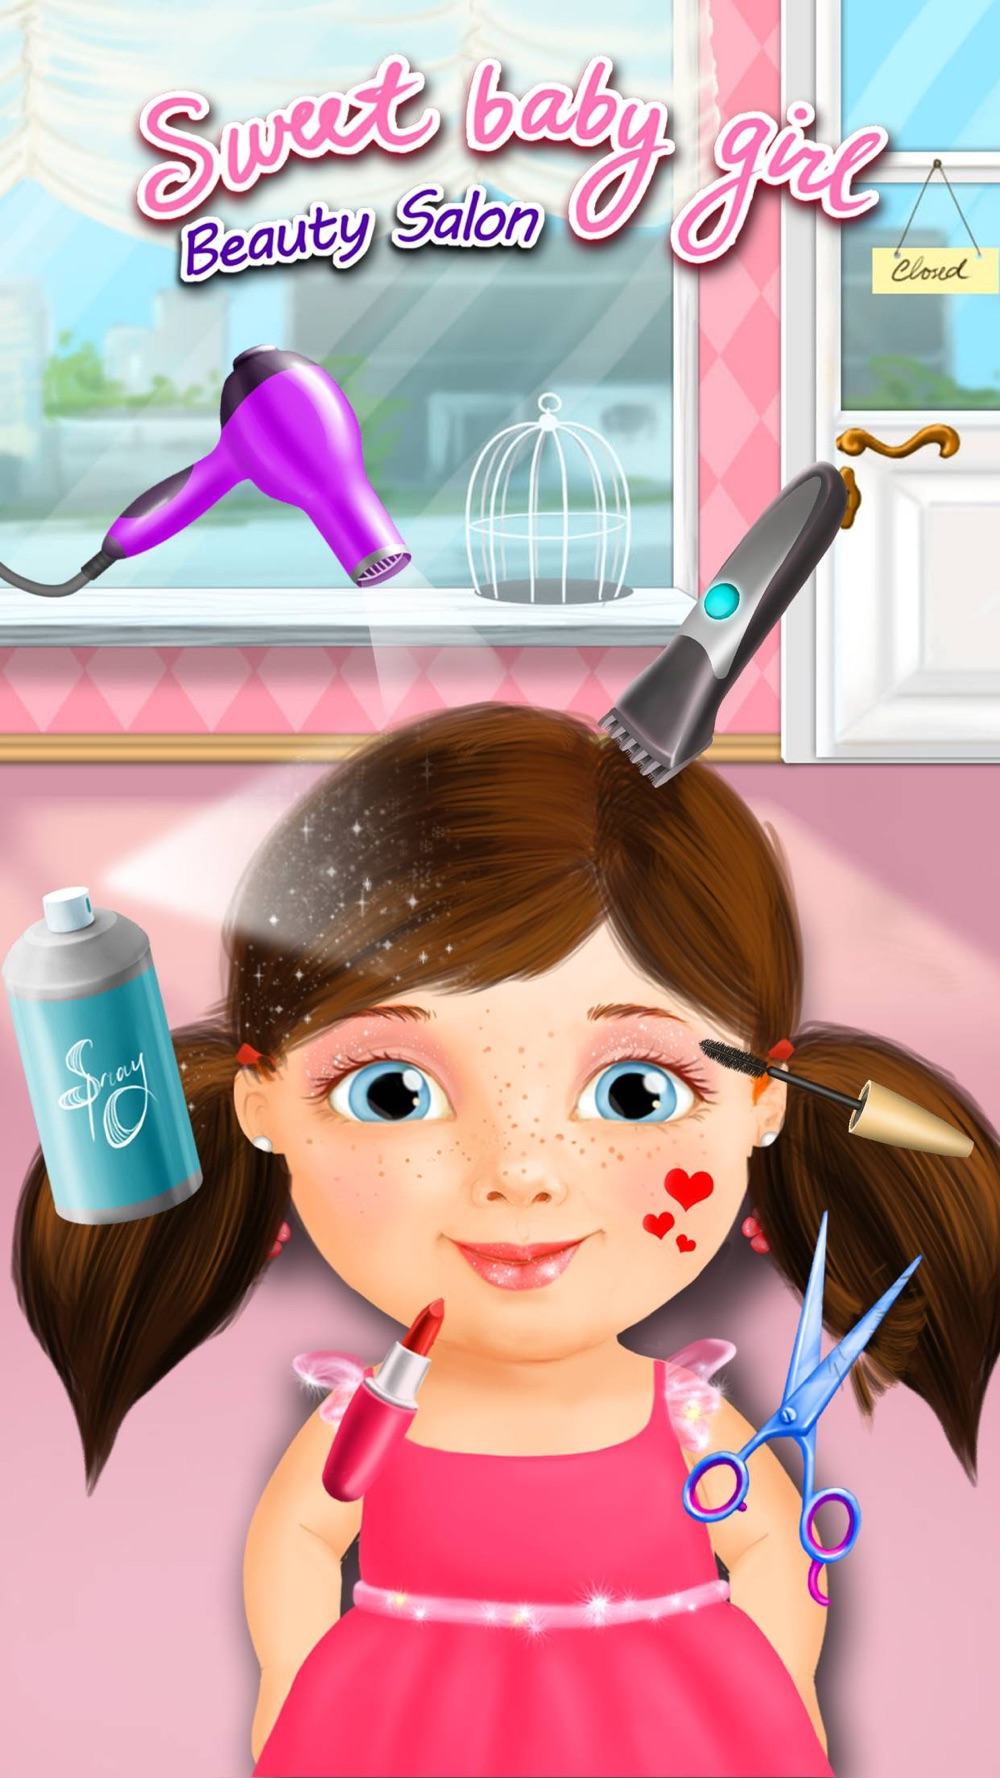 Sweet Baby Girl Beauty Salon – Manicure and Makeup